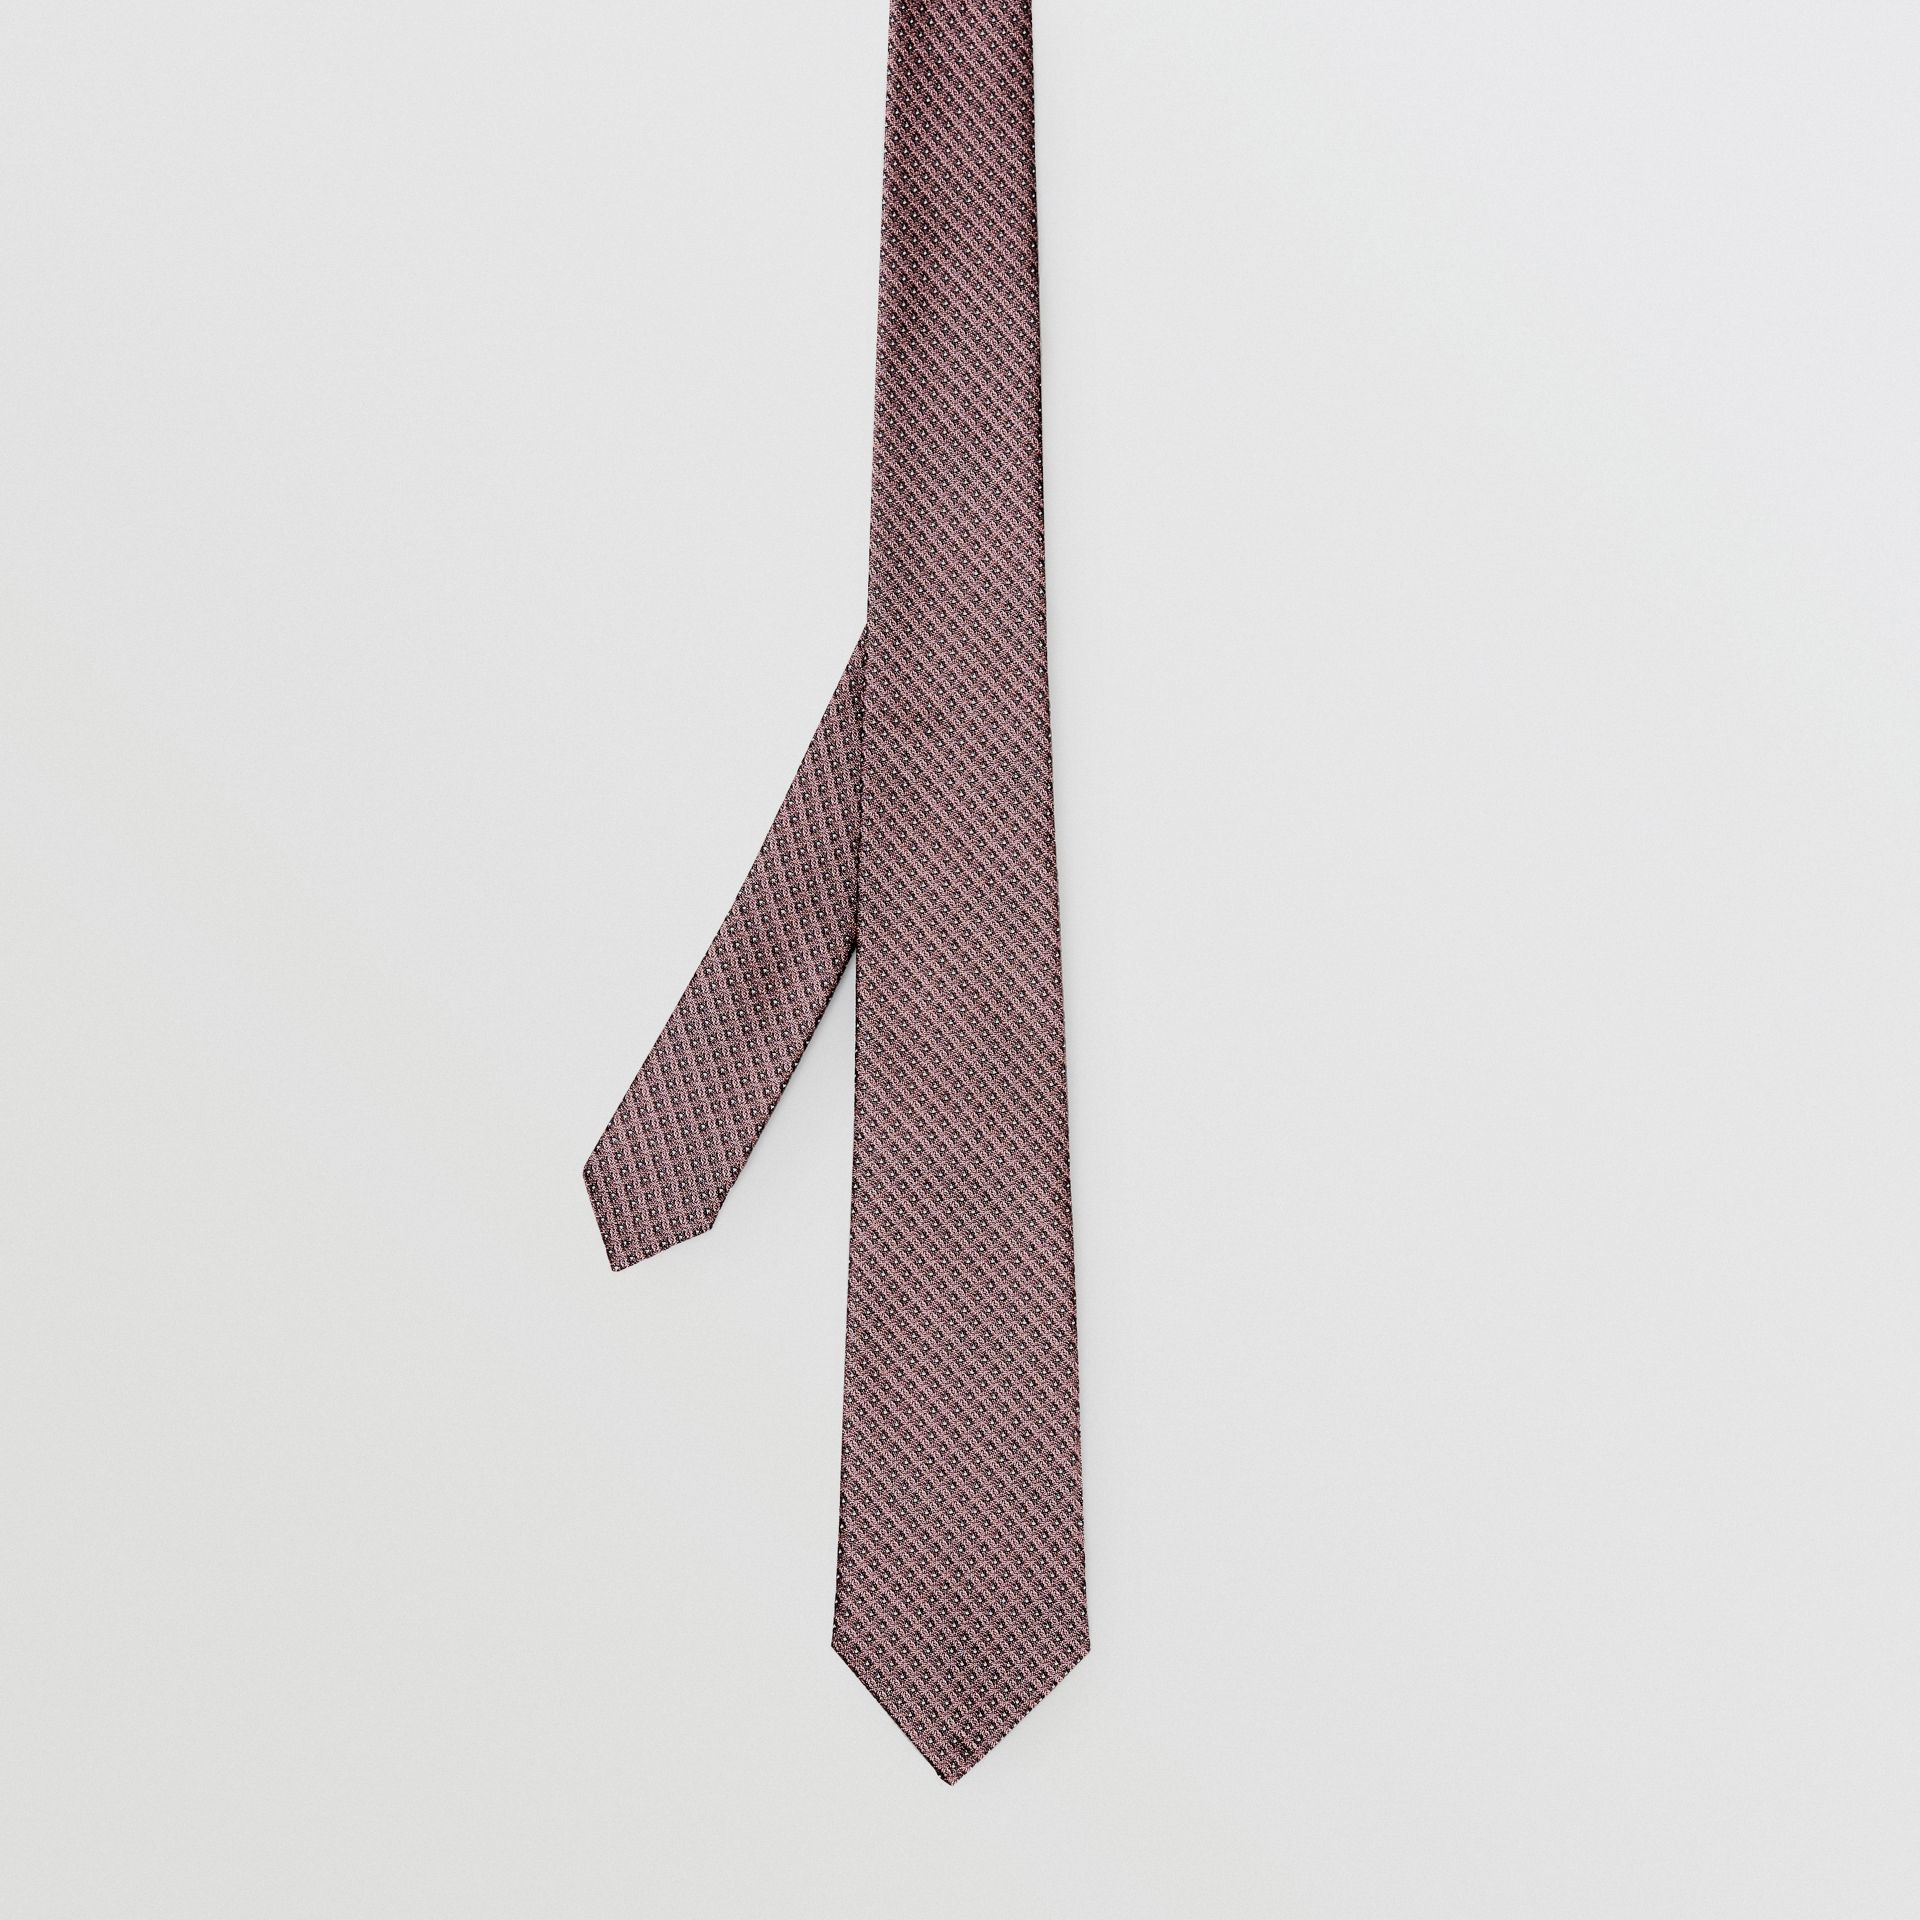 Classic Cut Micro Dot Silk Jacquard Tie in Garnet Pink - Men | Burberry - gallery image 4